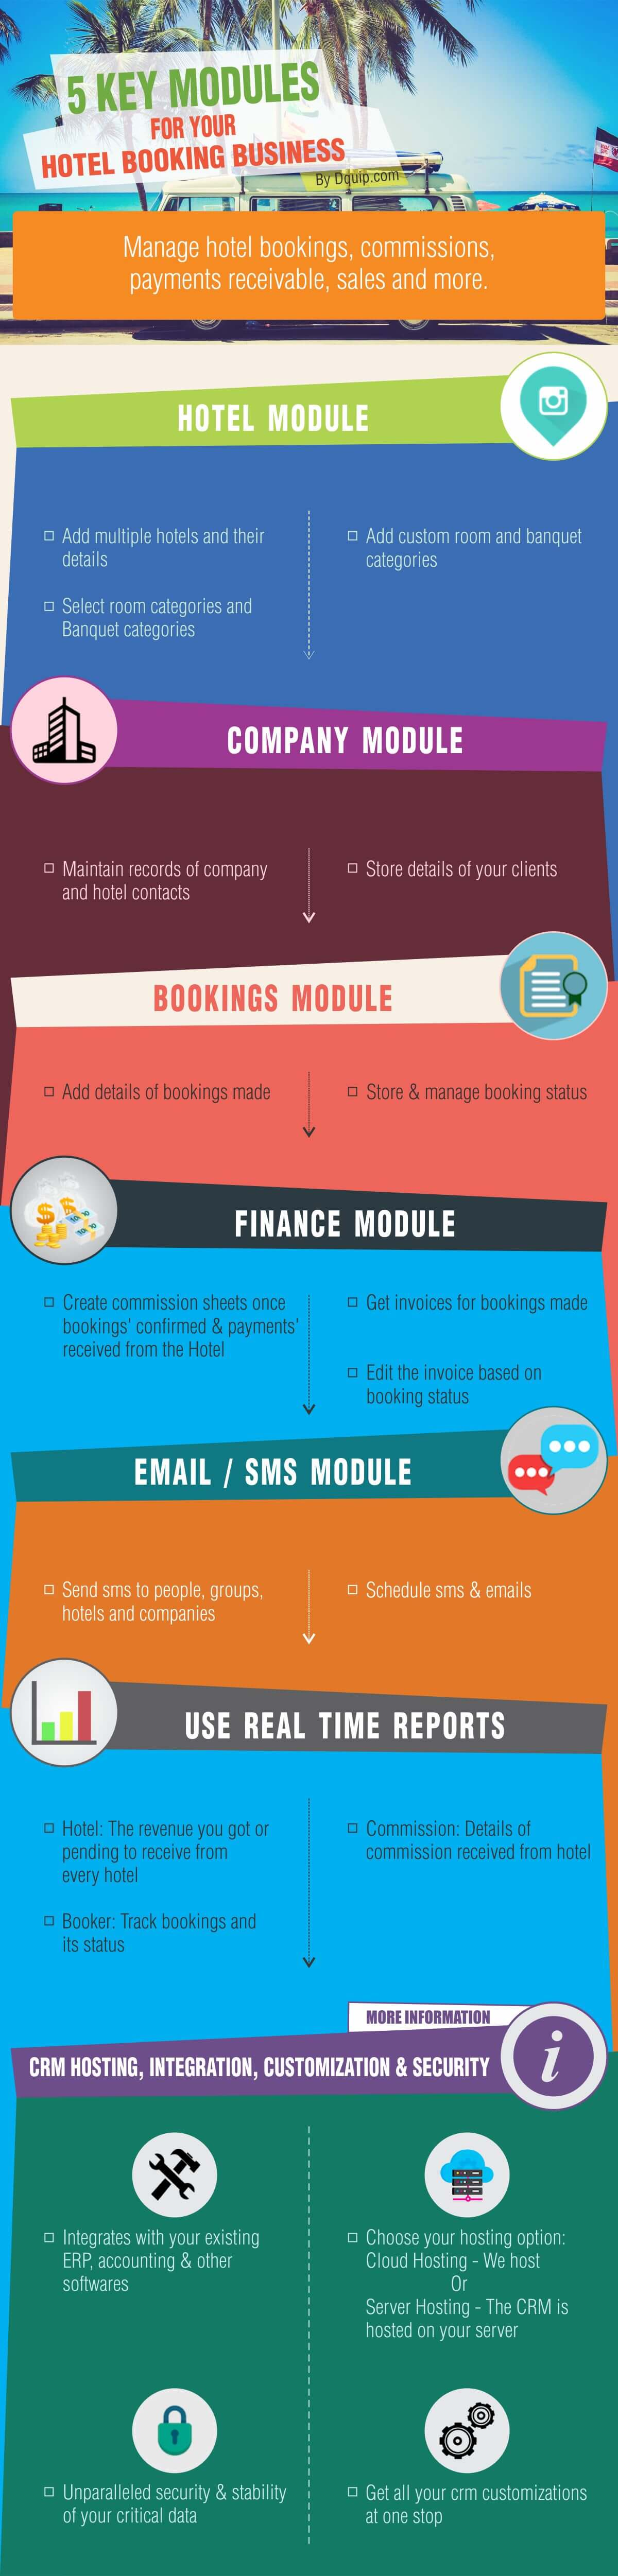 infographic on hotel booking crm in a business flow